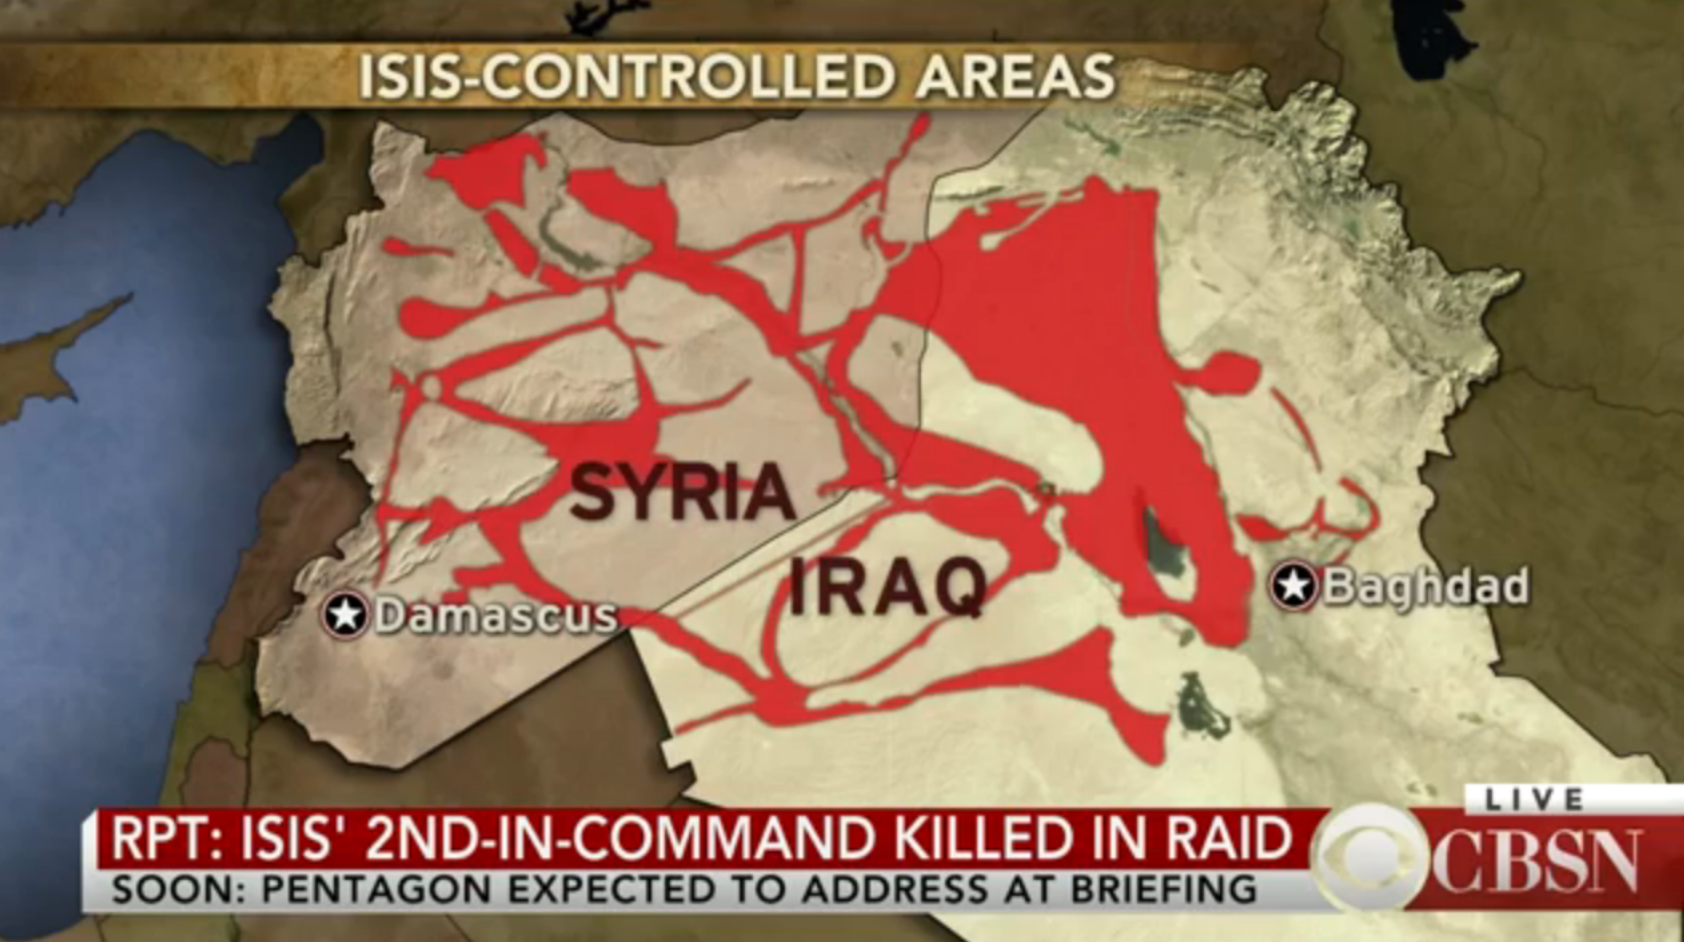 ISIS No. 2 in command killed, U.S. believes